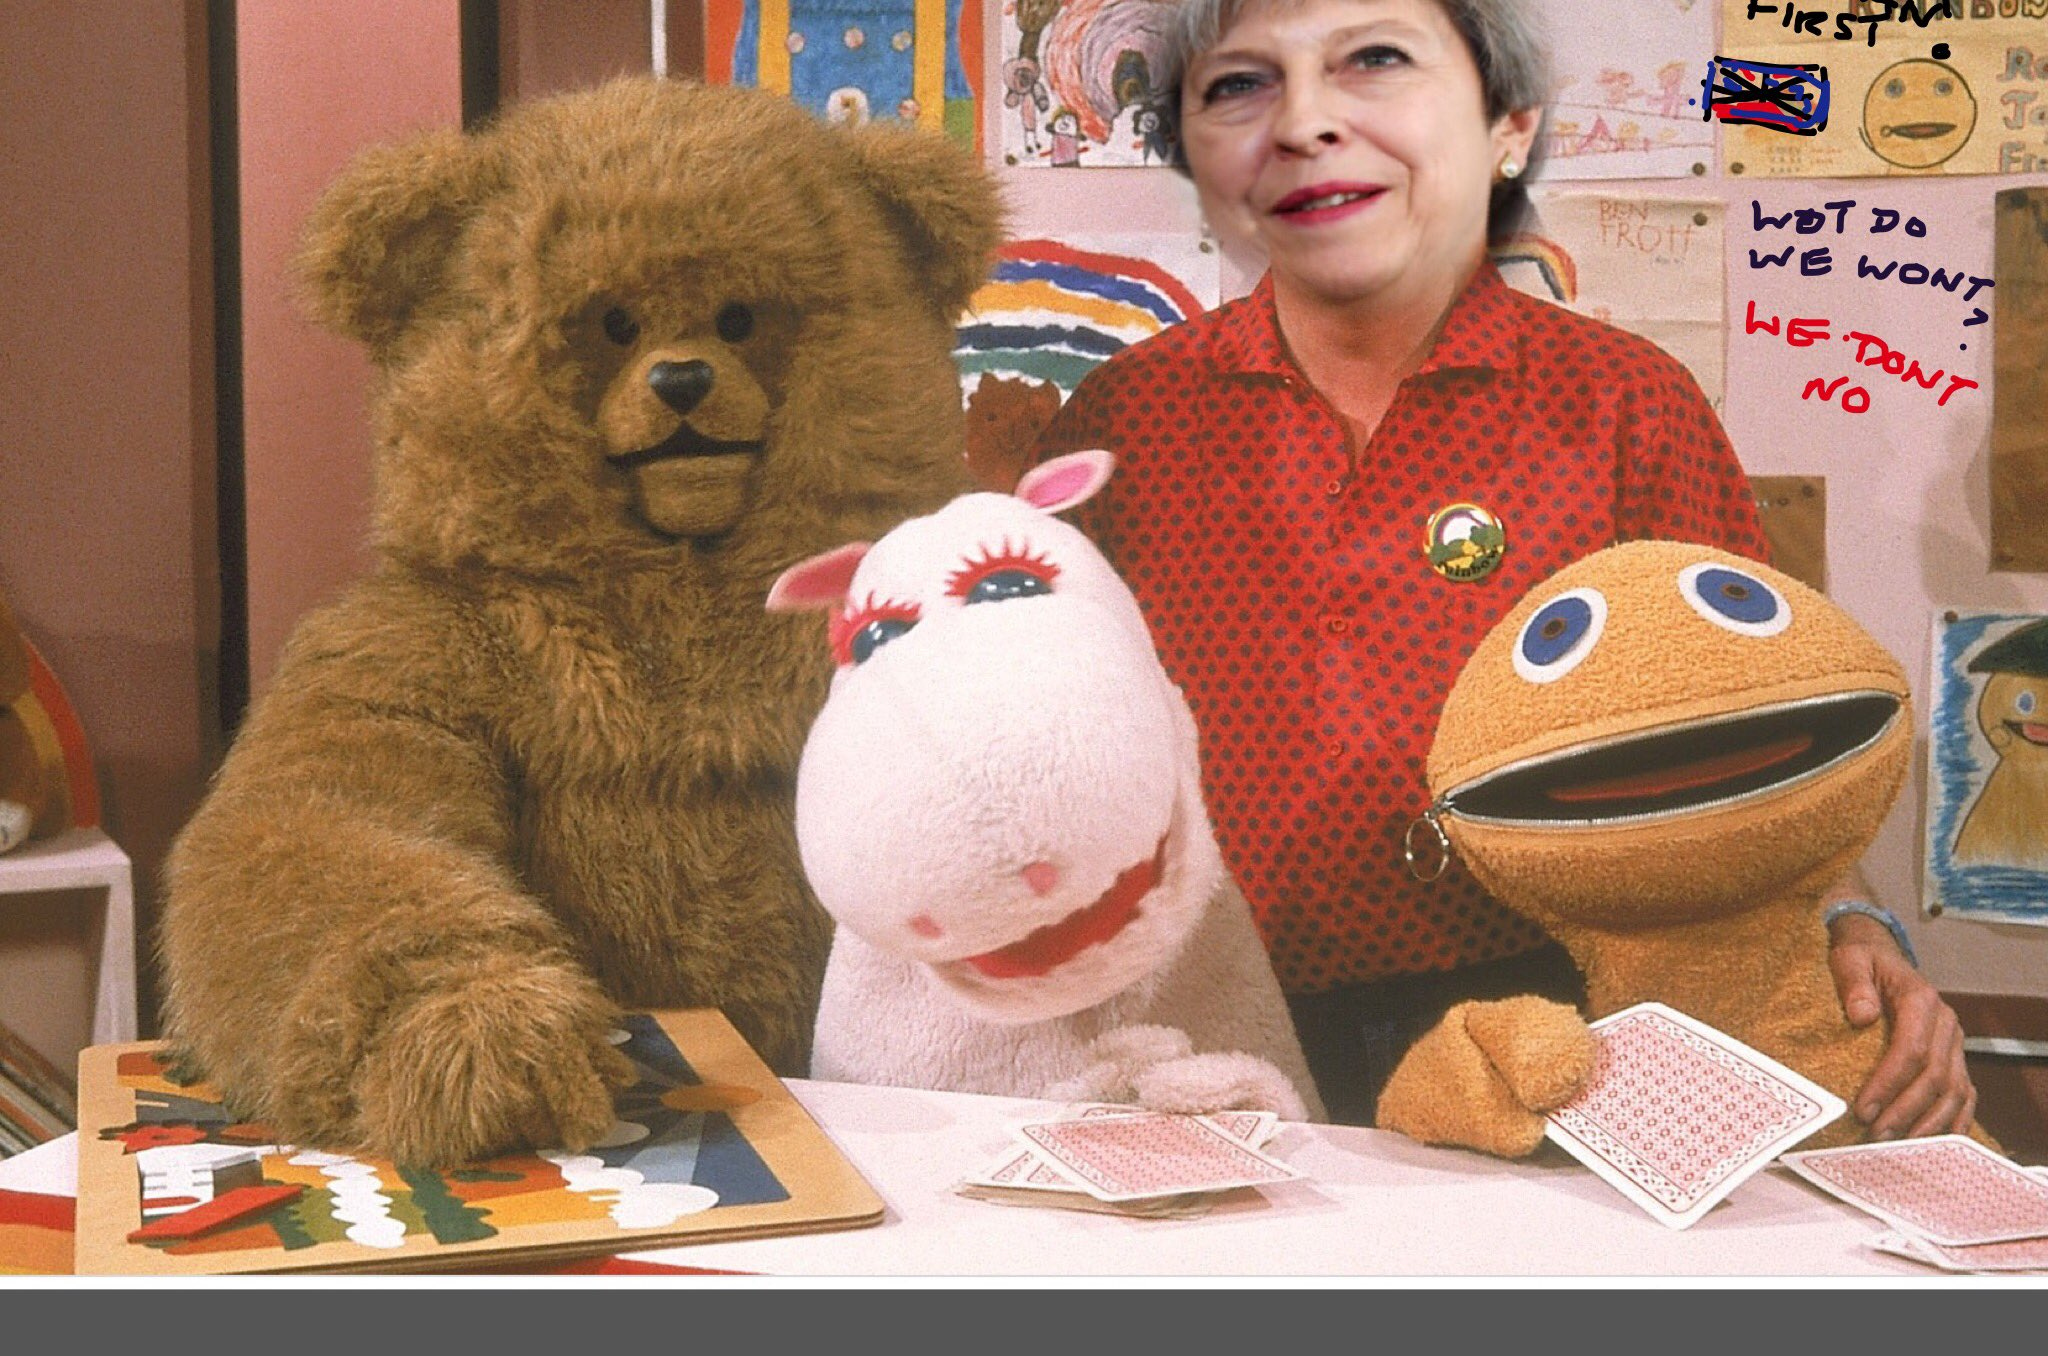 Theresa May upgrades the negotiating team for next round of talks. https://t.co/hGRD8T2gvz